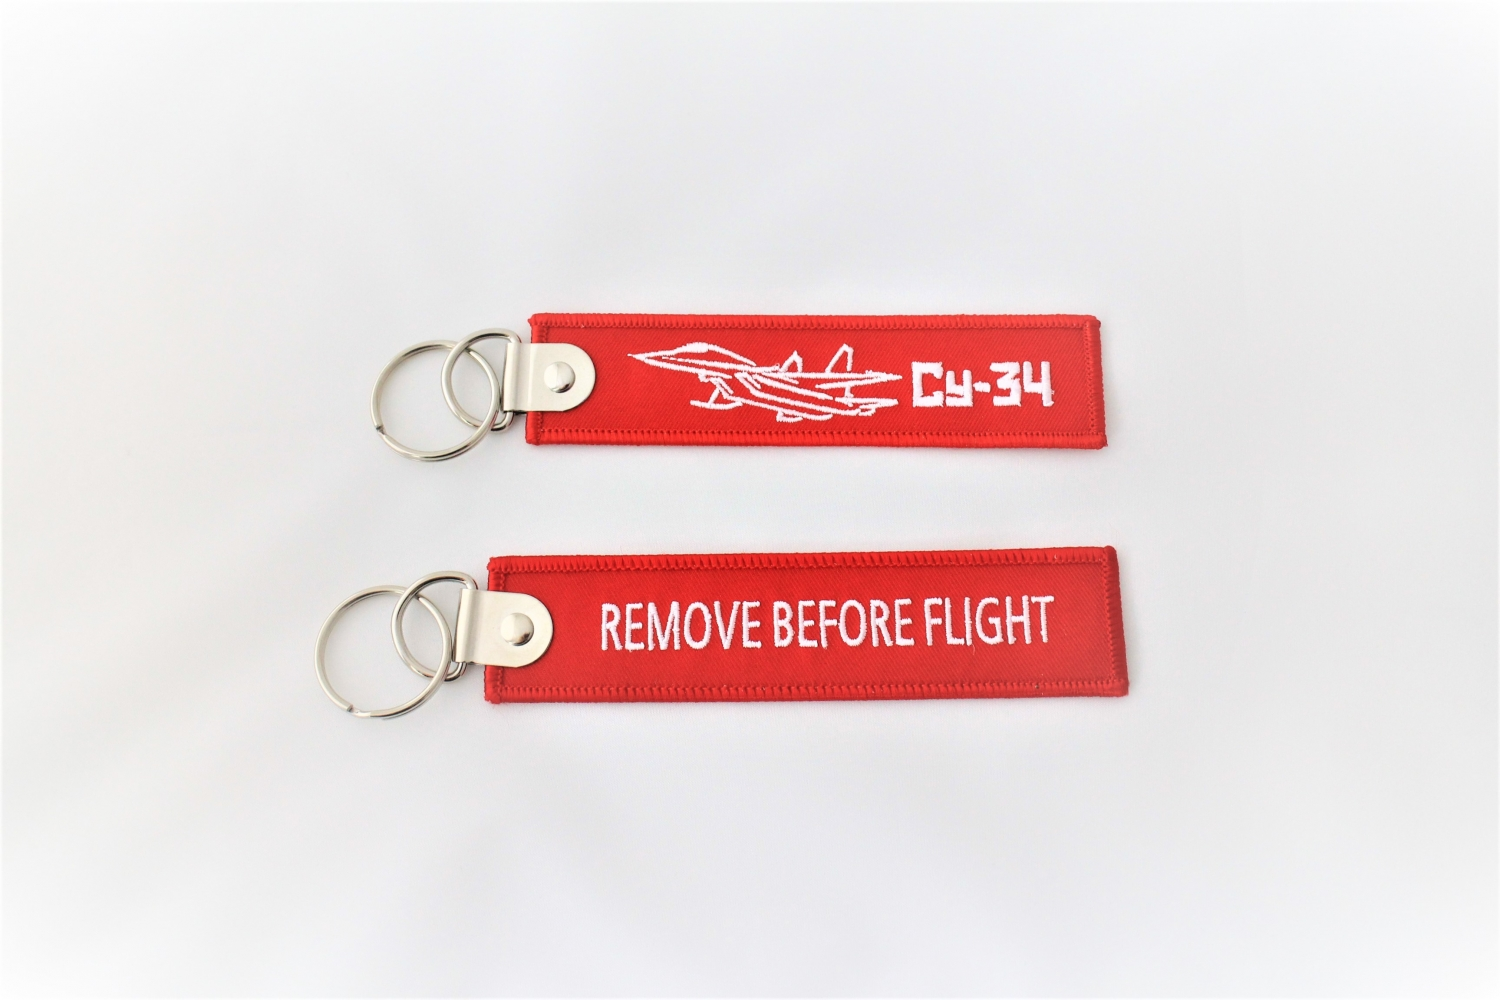 Брелок «Remove before flight  СУ -34»